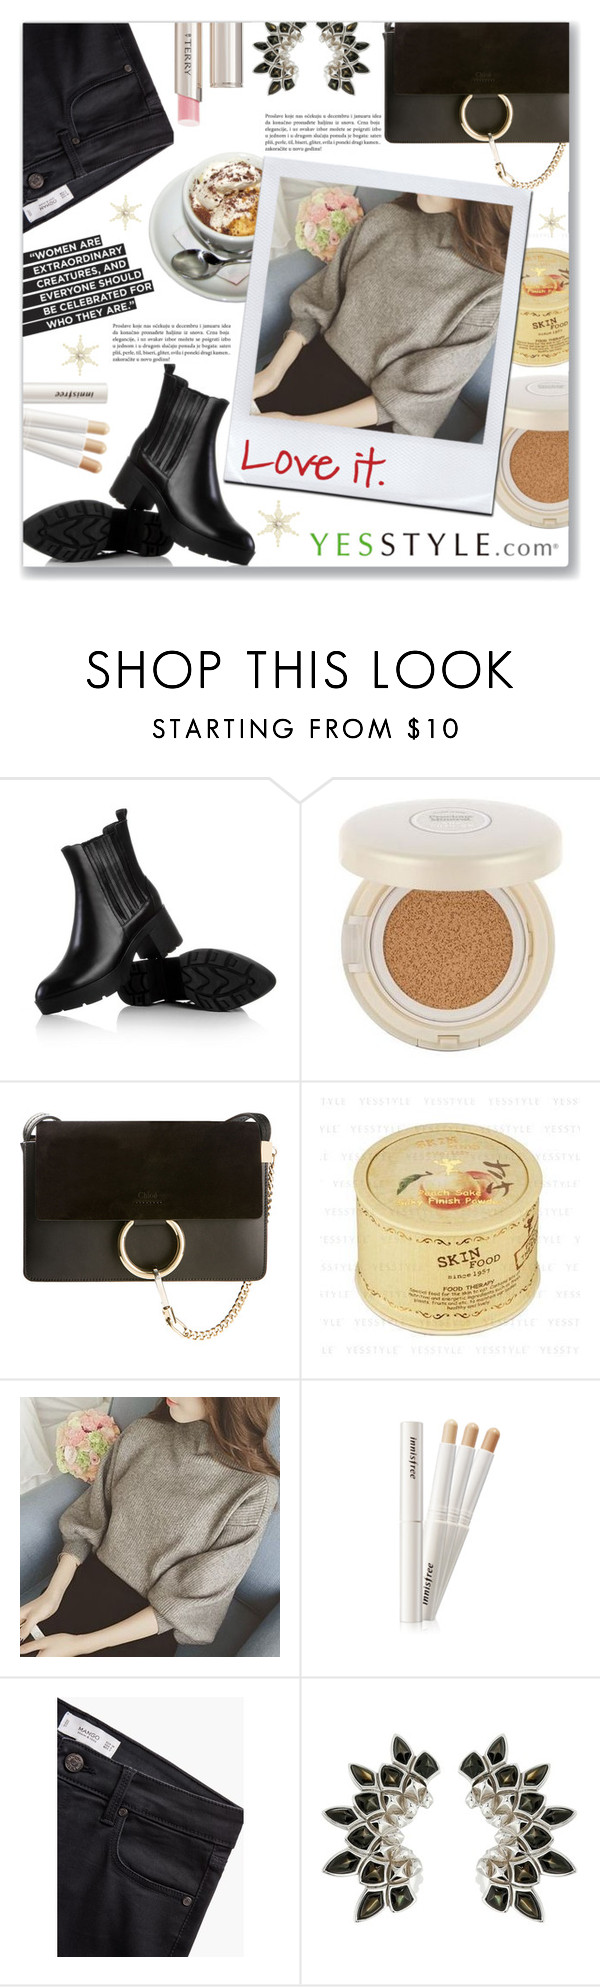 """YesStyle Polyvore Group "" Show us your YesStyle """" by dressedbyrose ❤ liked on Polyvore featuring JY Shoes, Chloé, MANGO, Stephen Webster, By Terry, women's clothing, women's fashion, women, female and woman"